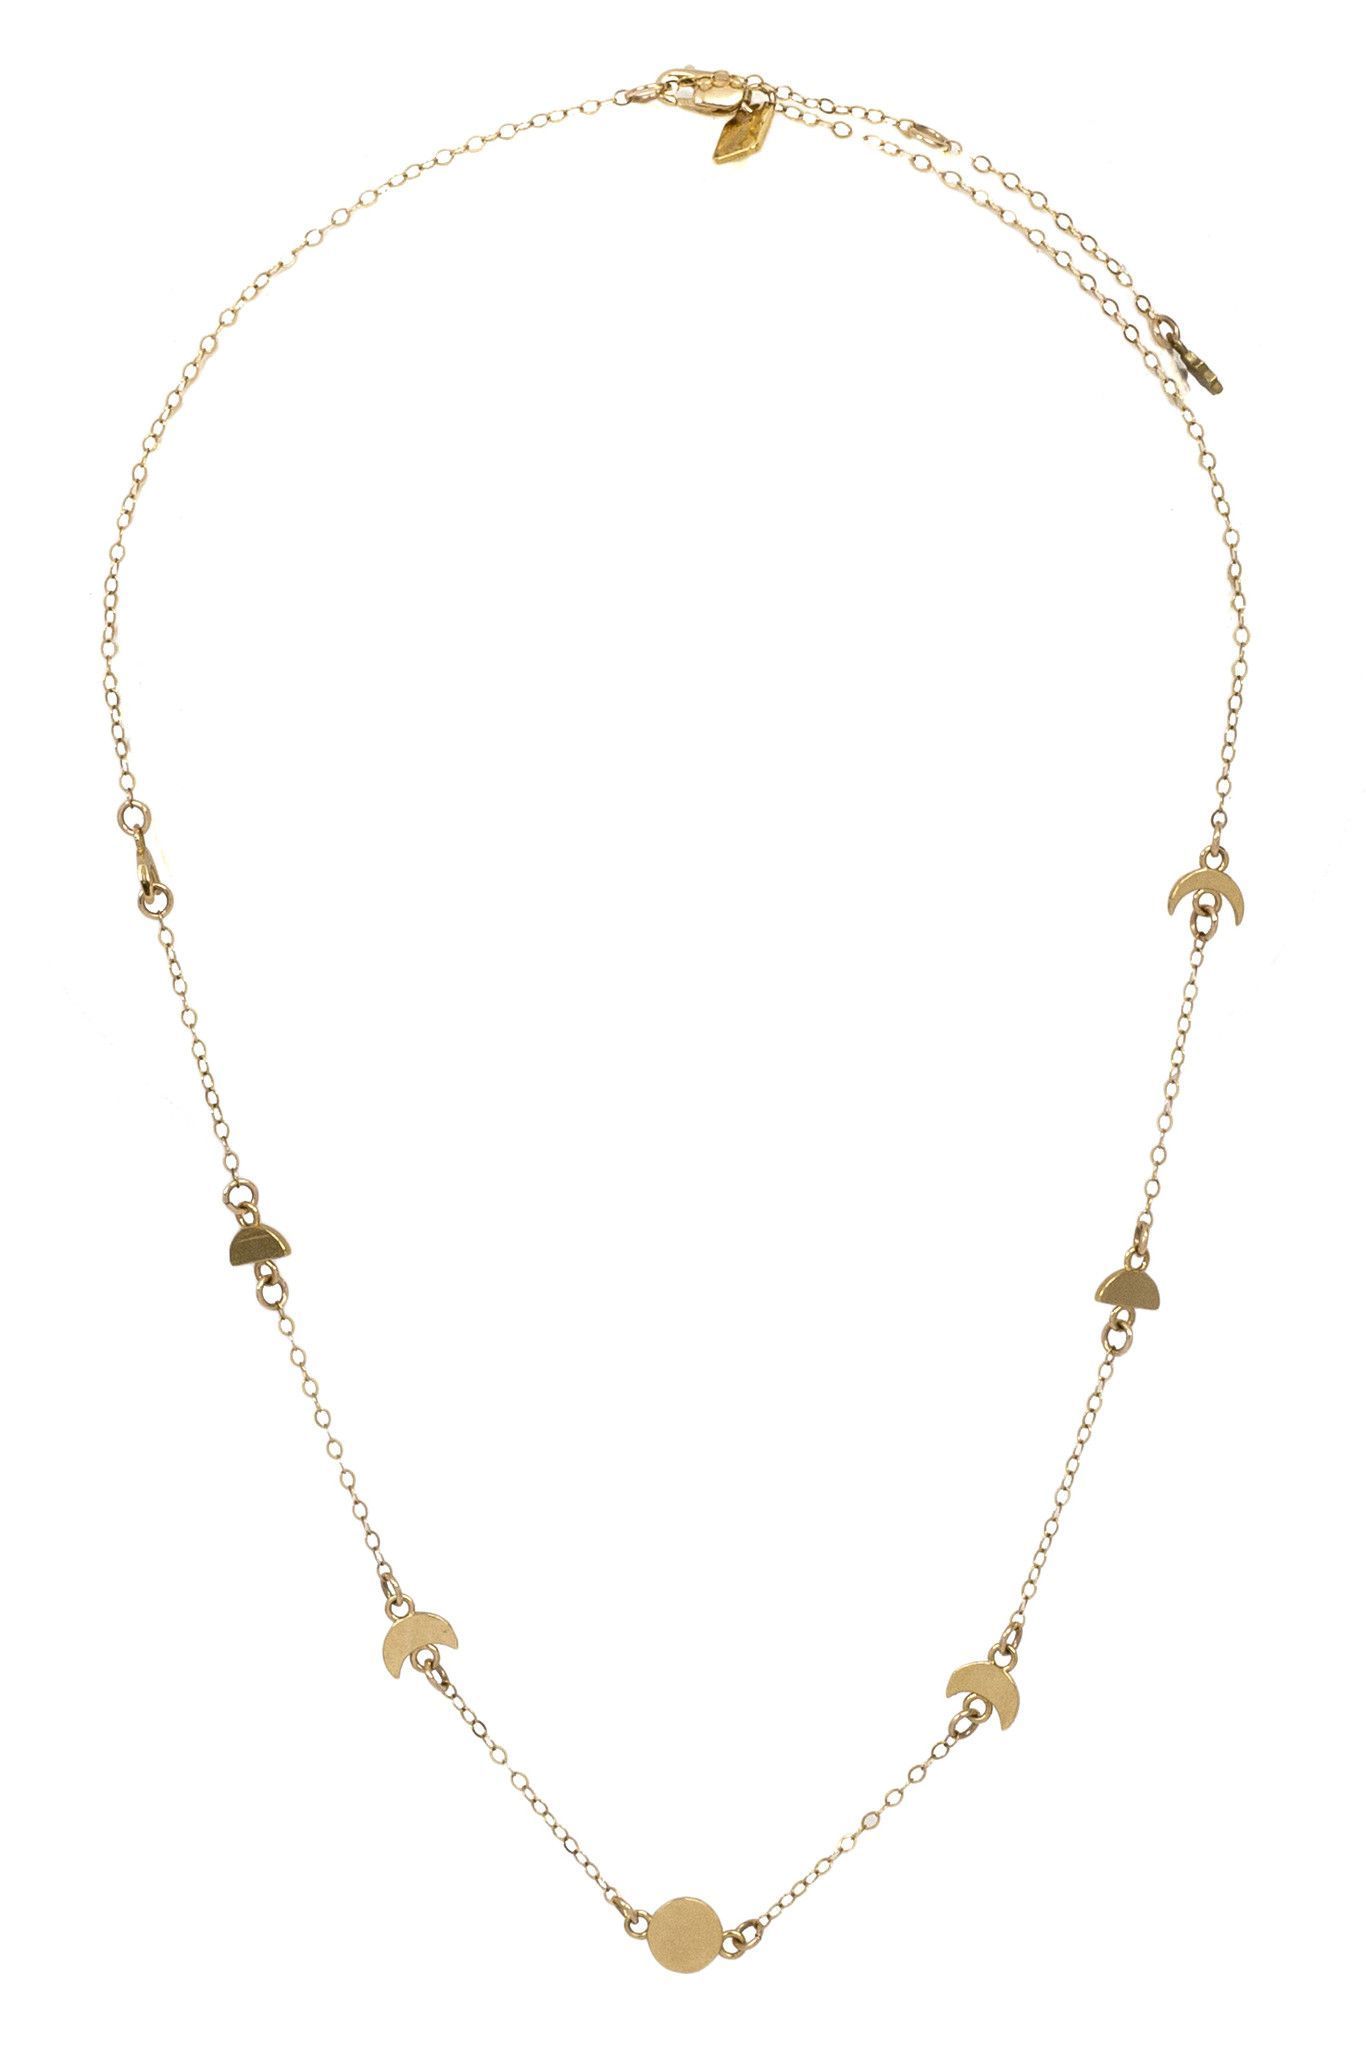 """The Ara Moon Phase Choker is celestial-inspired piece with a touch of geometric styling. The combination of magical influence and short length make this necklace a definite eye-catcher.Measures 15.75"""" in length with a 2"""" extender.Gold fill chain with gold plated Sterling Silver pendants or Sterli..."""